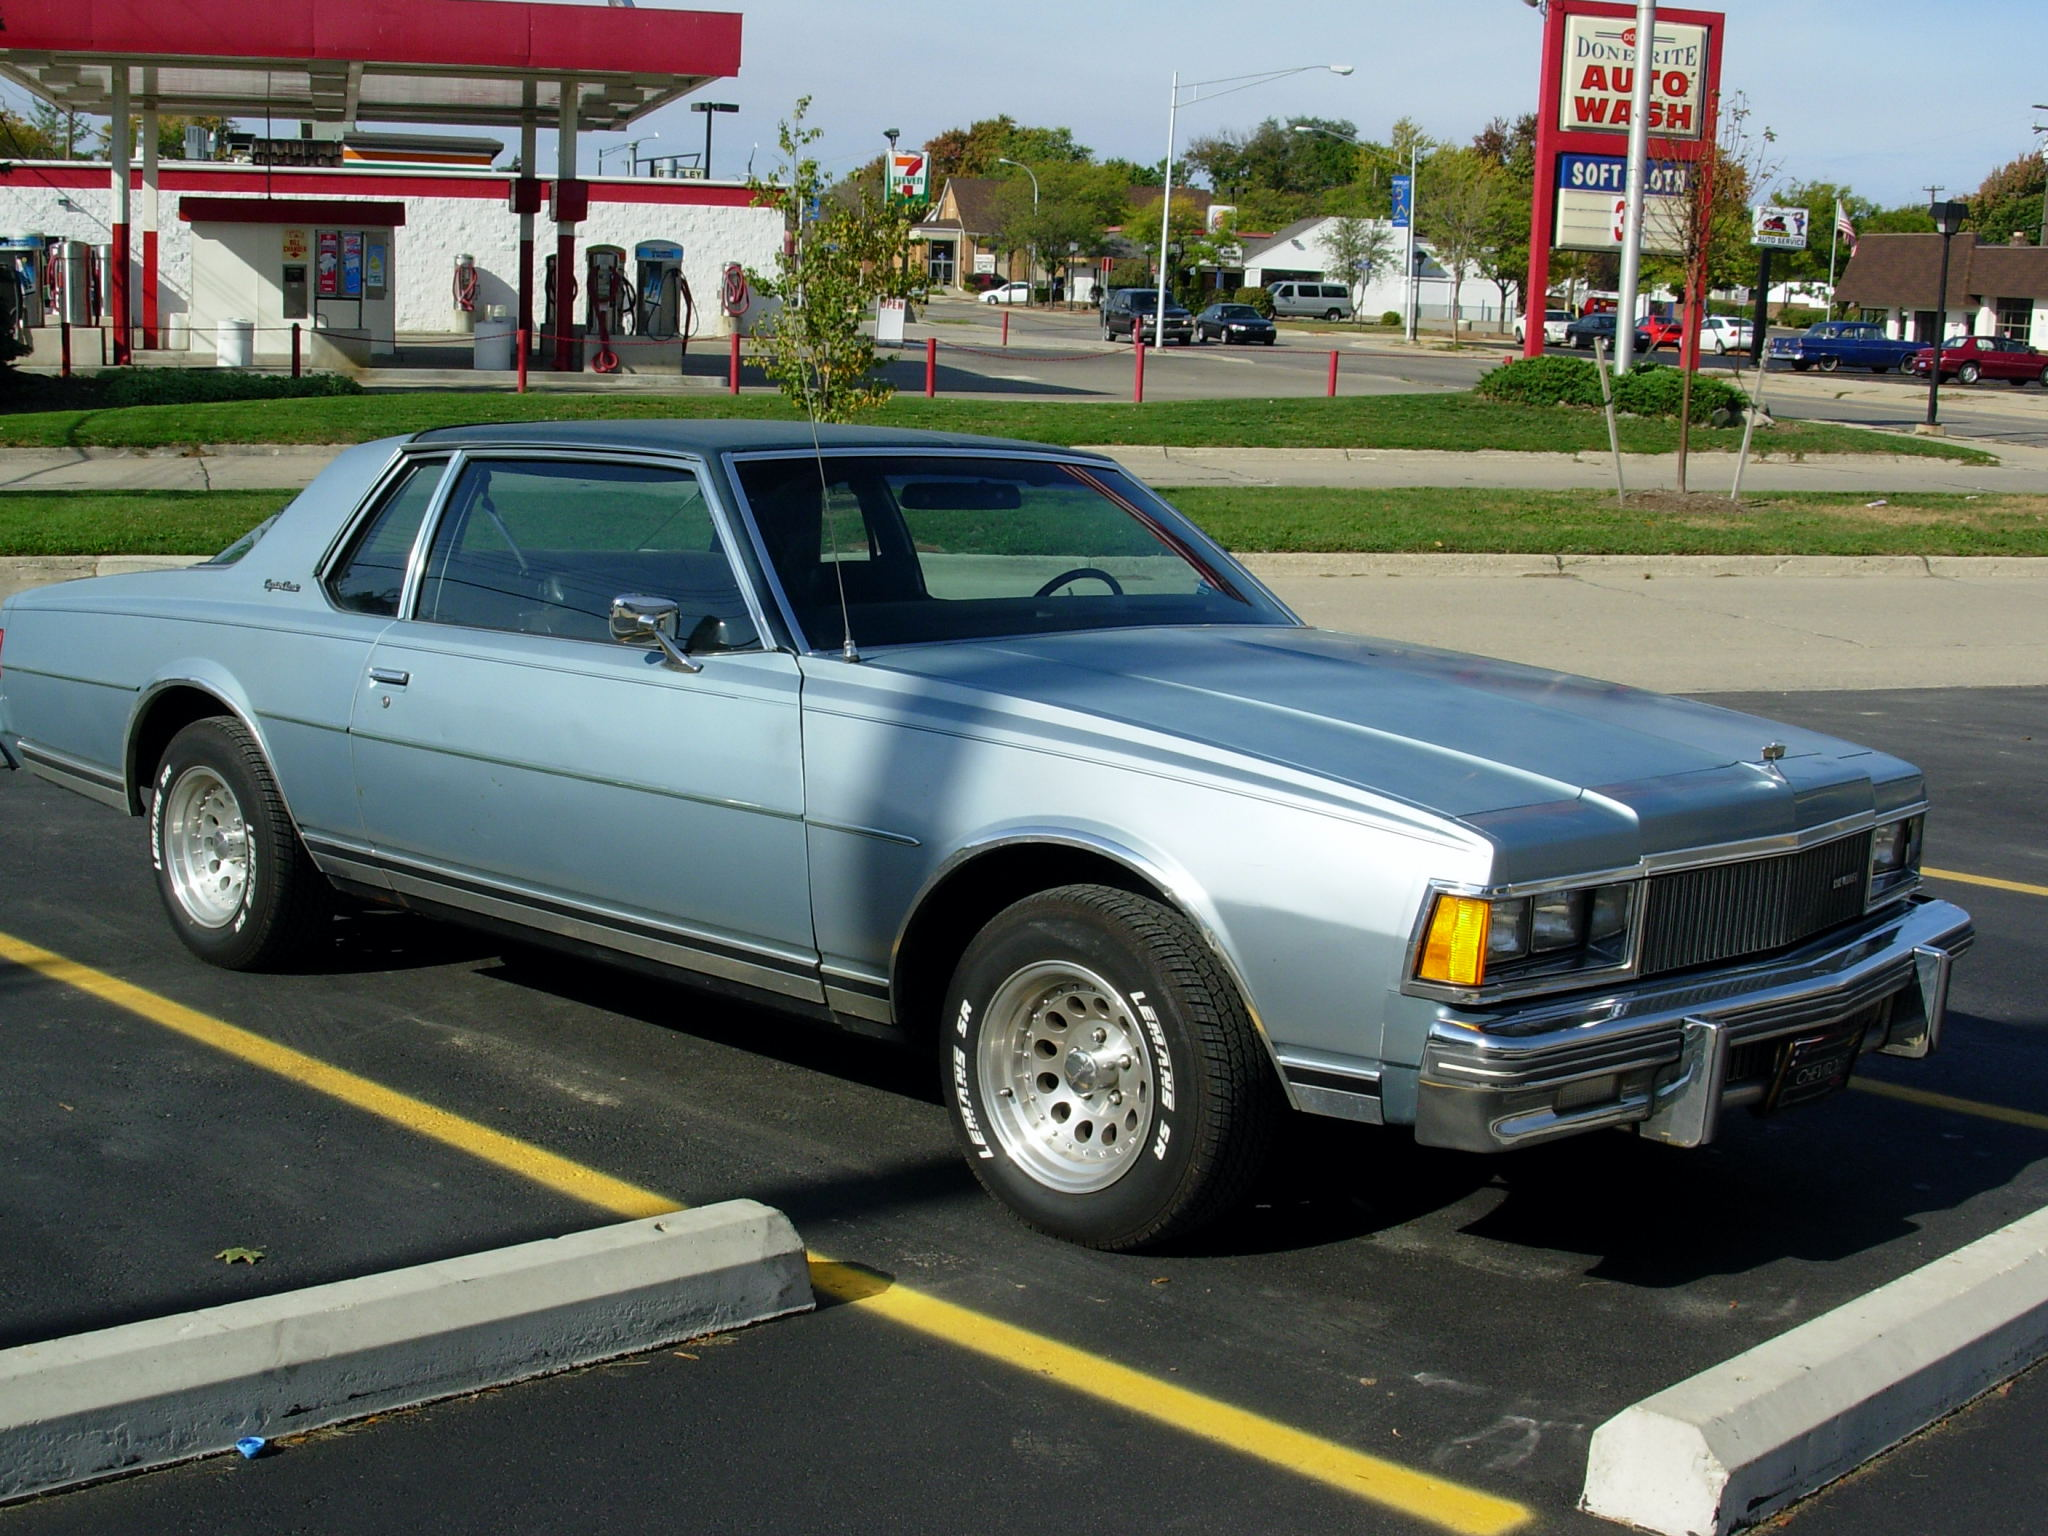 14735061317 furthermore 8461945265 furthermore Watch moreover Oldsmobile Cutlass as well 1977 Chevrolet Malibu Classic Landau Coupe 2 Door 5 0l 381633. on chevrolet caprice coupe 1977